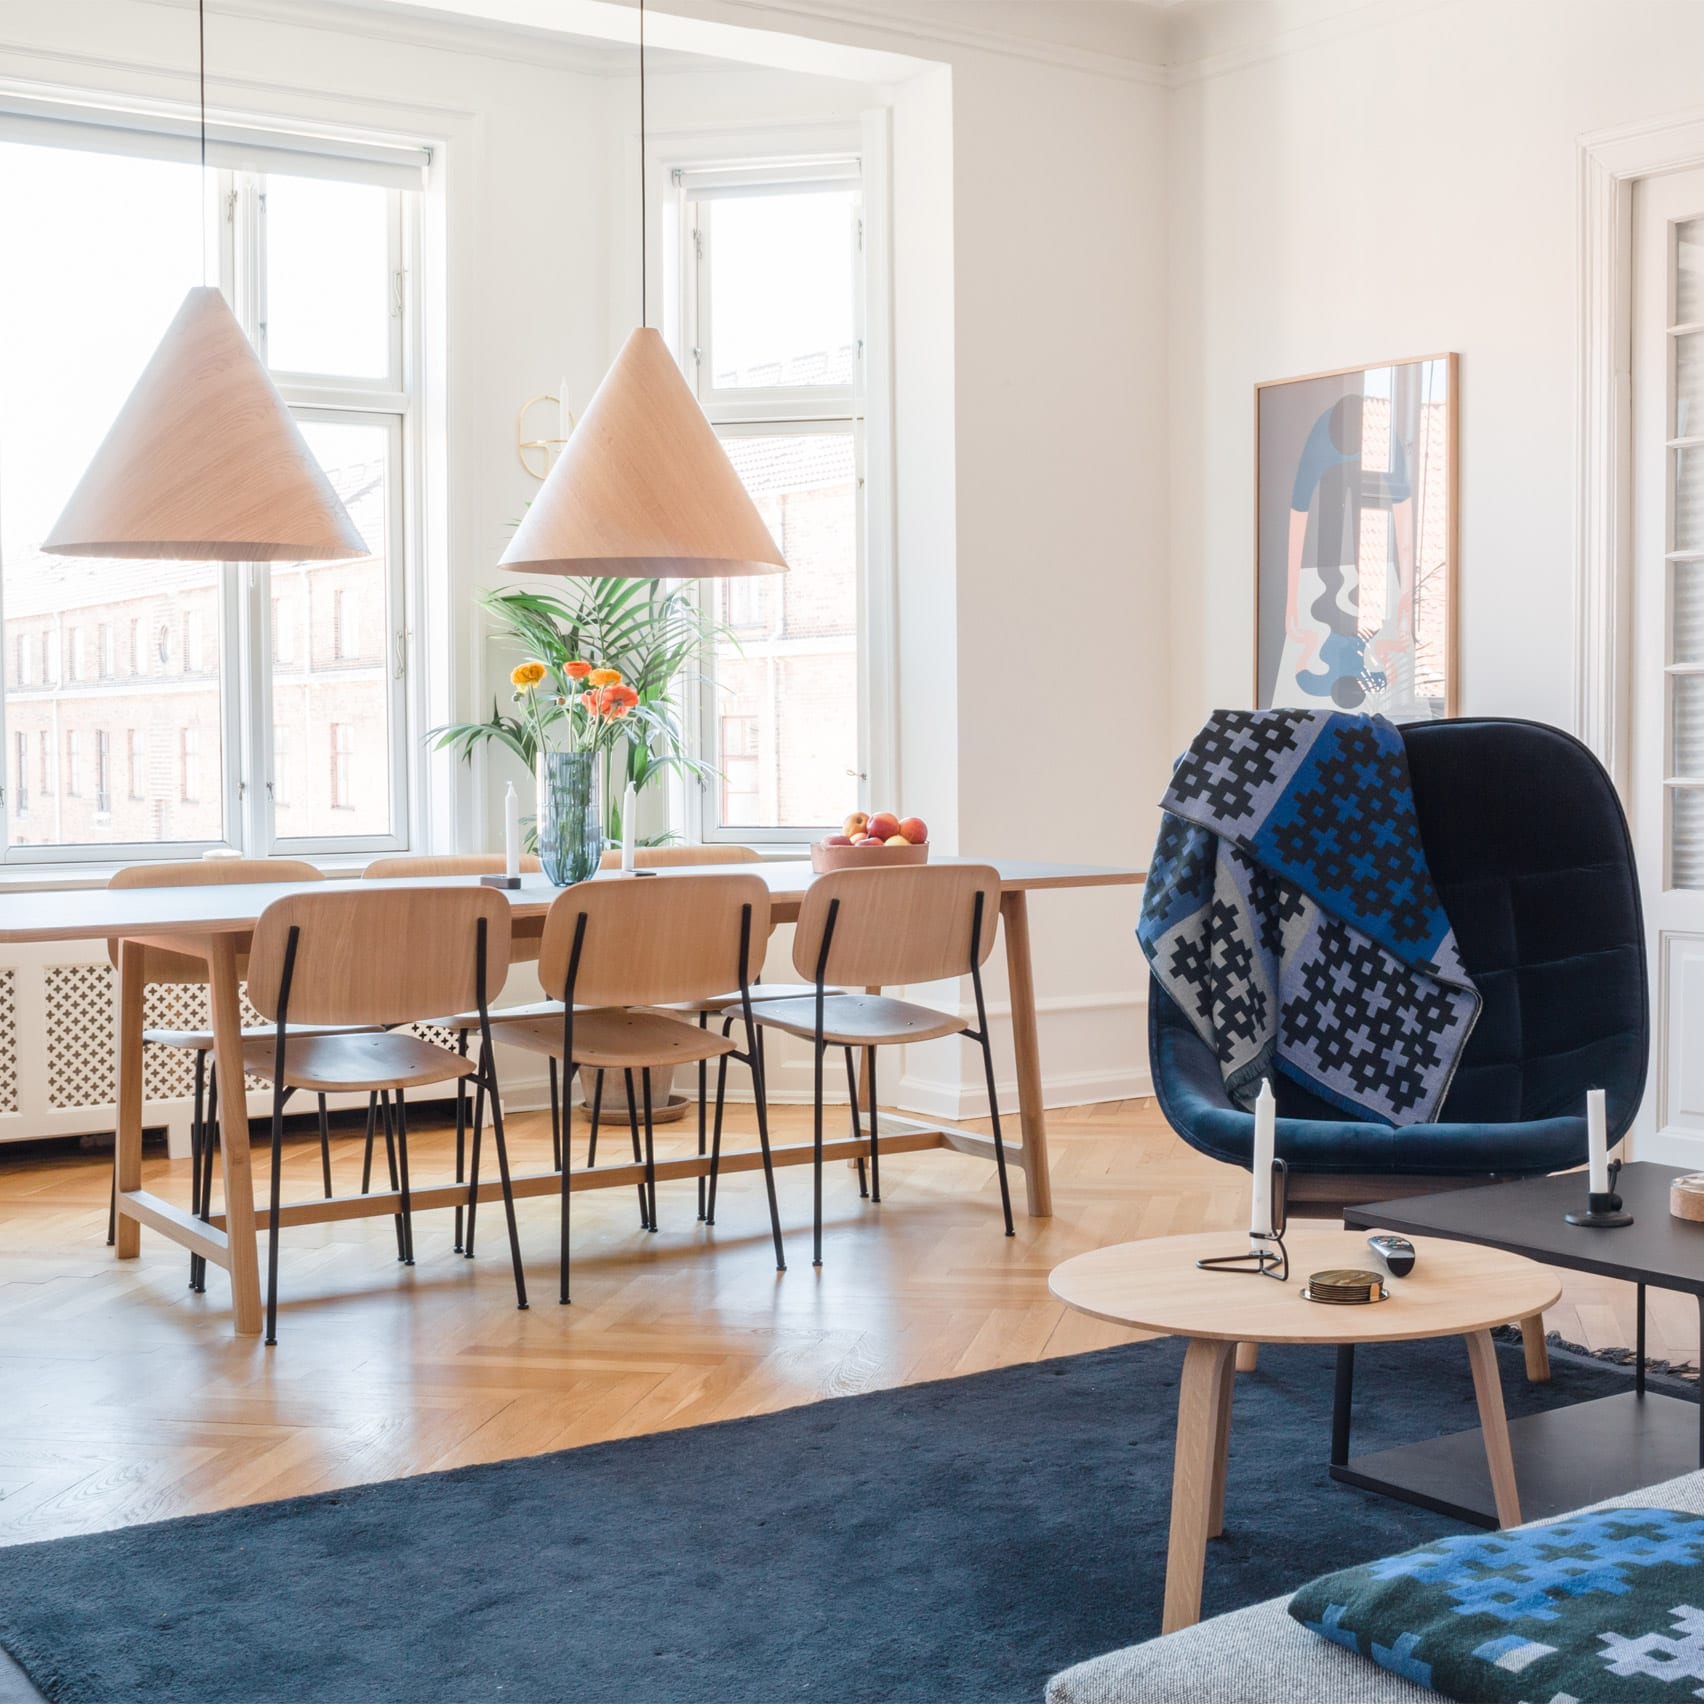 A co-living space with a large dining table